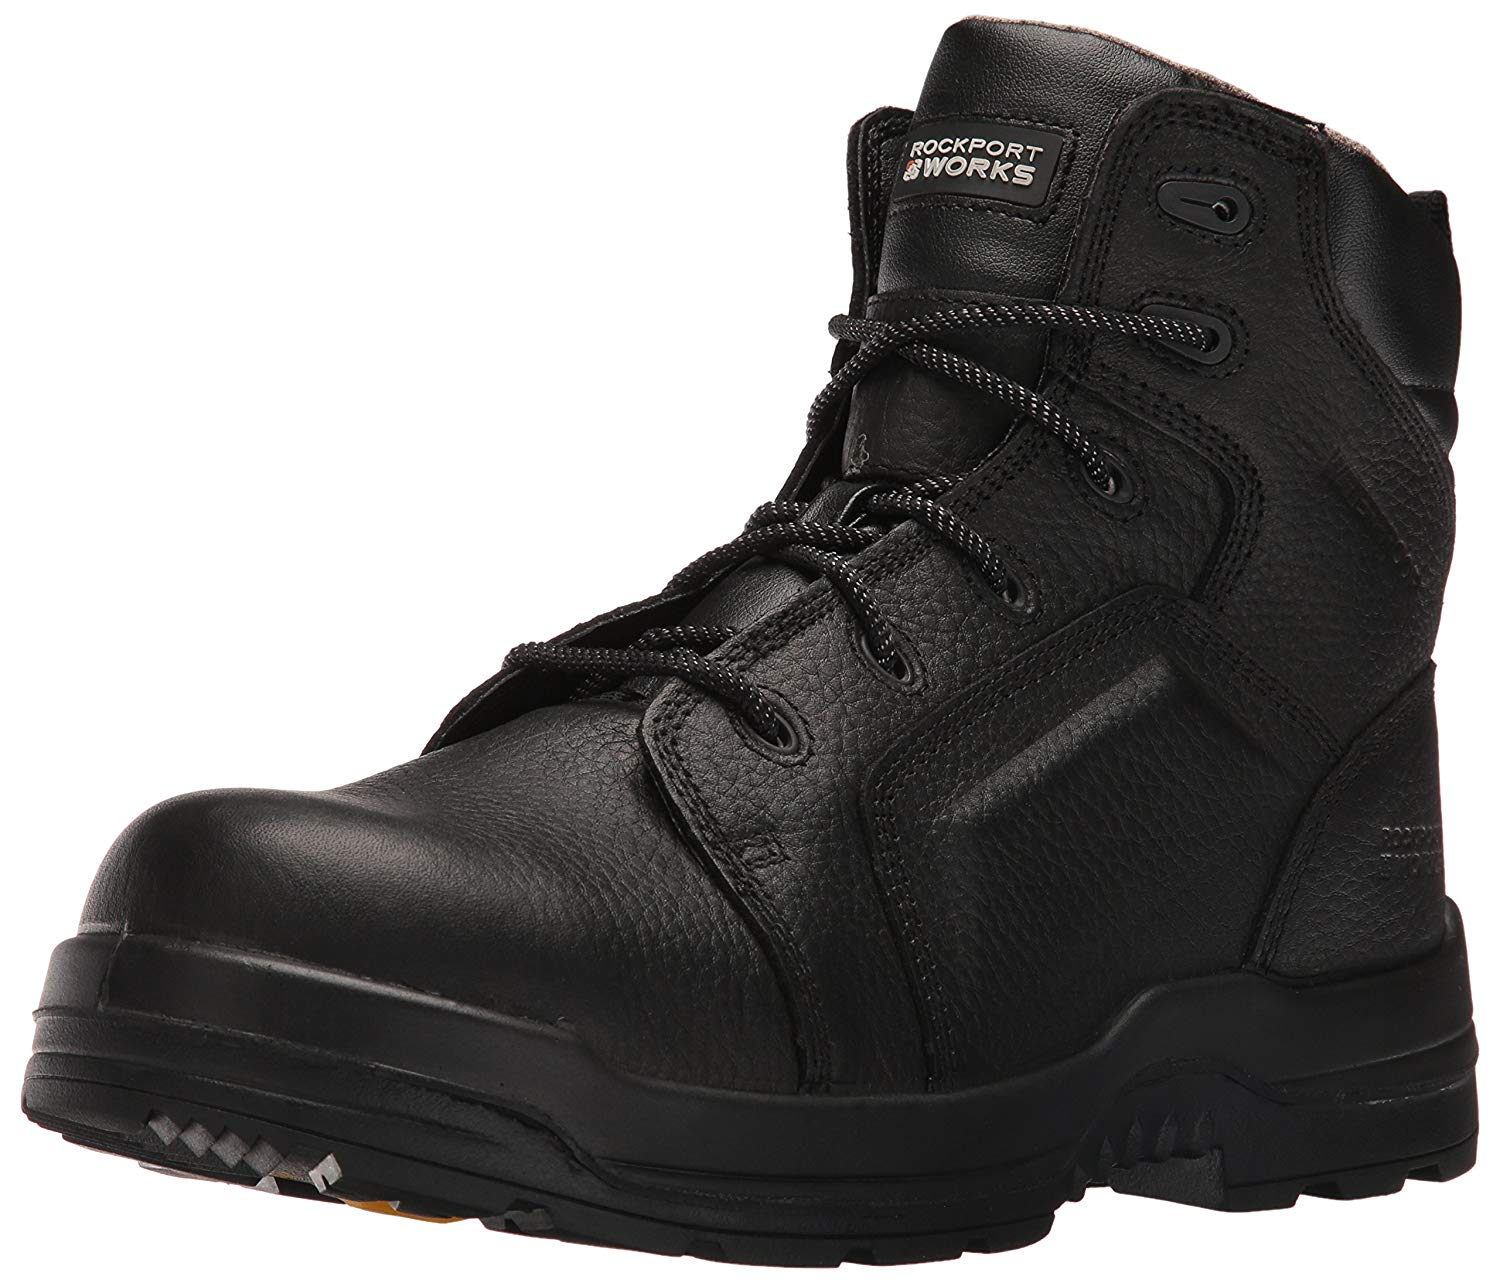 a85145ffda526 Cheap Rockport Boot, find Rockport Boot deals on line at Alibaba.com